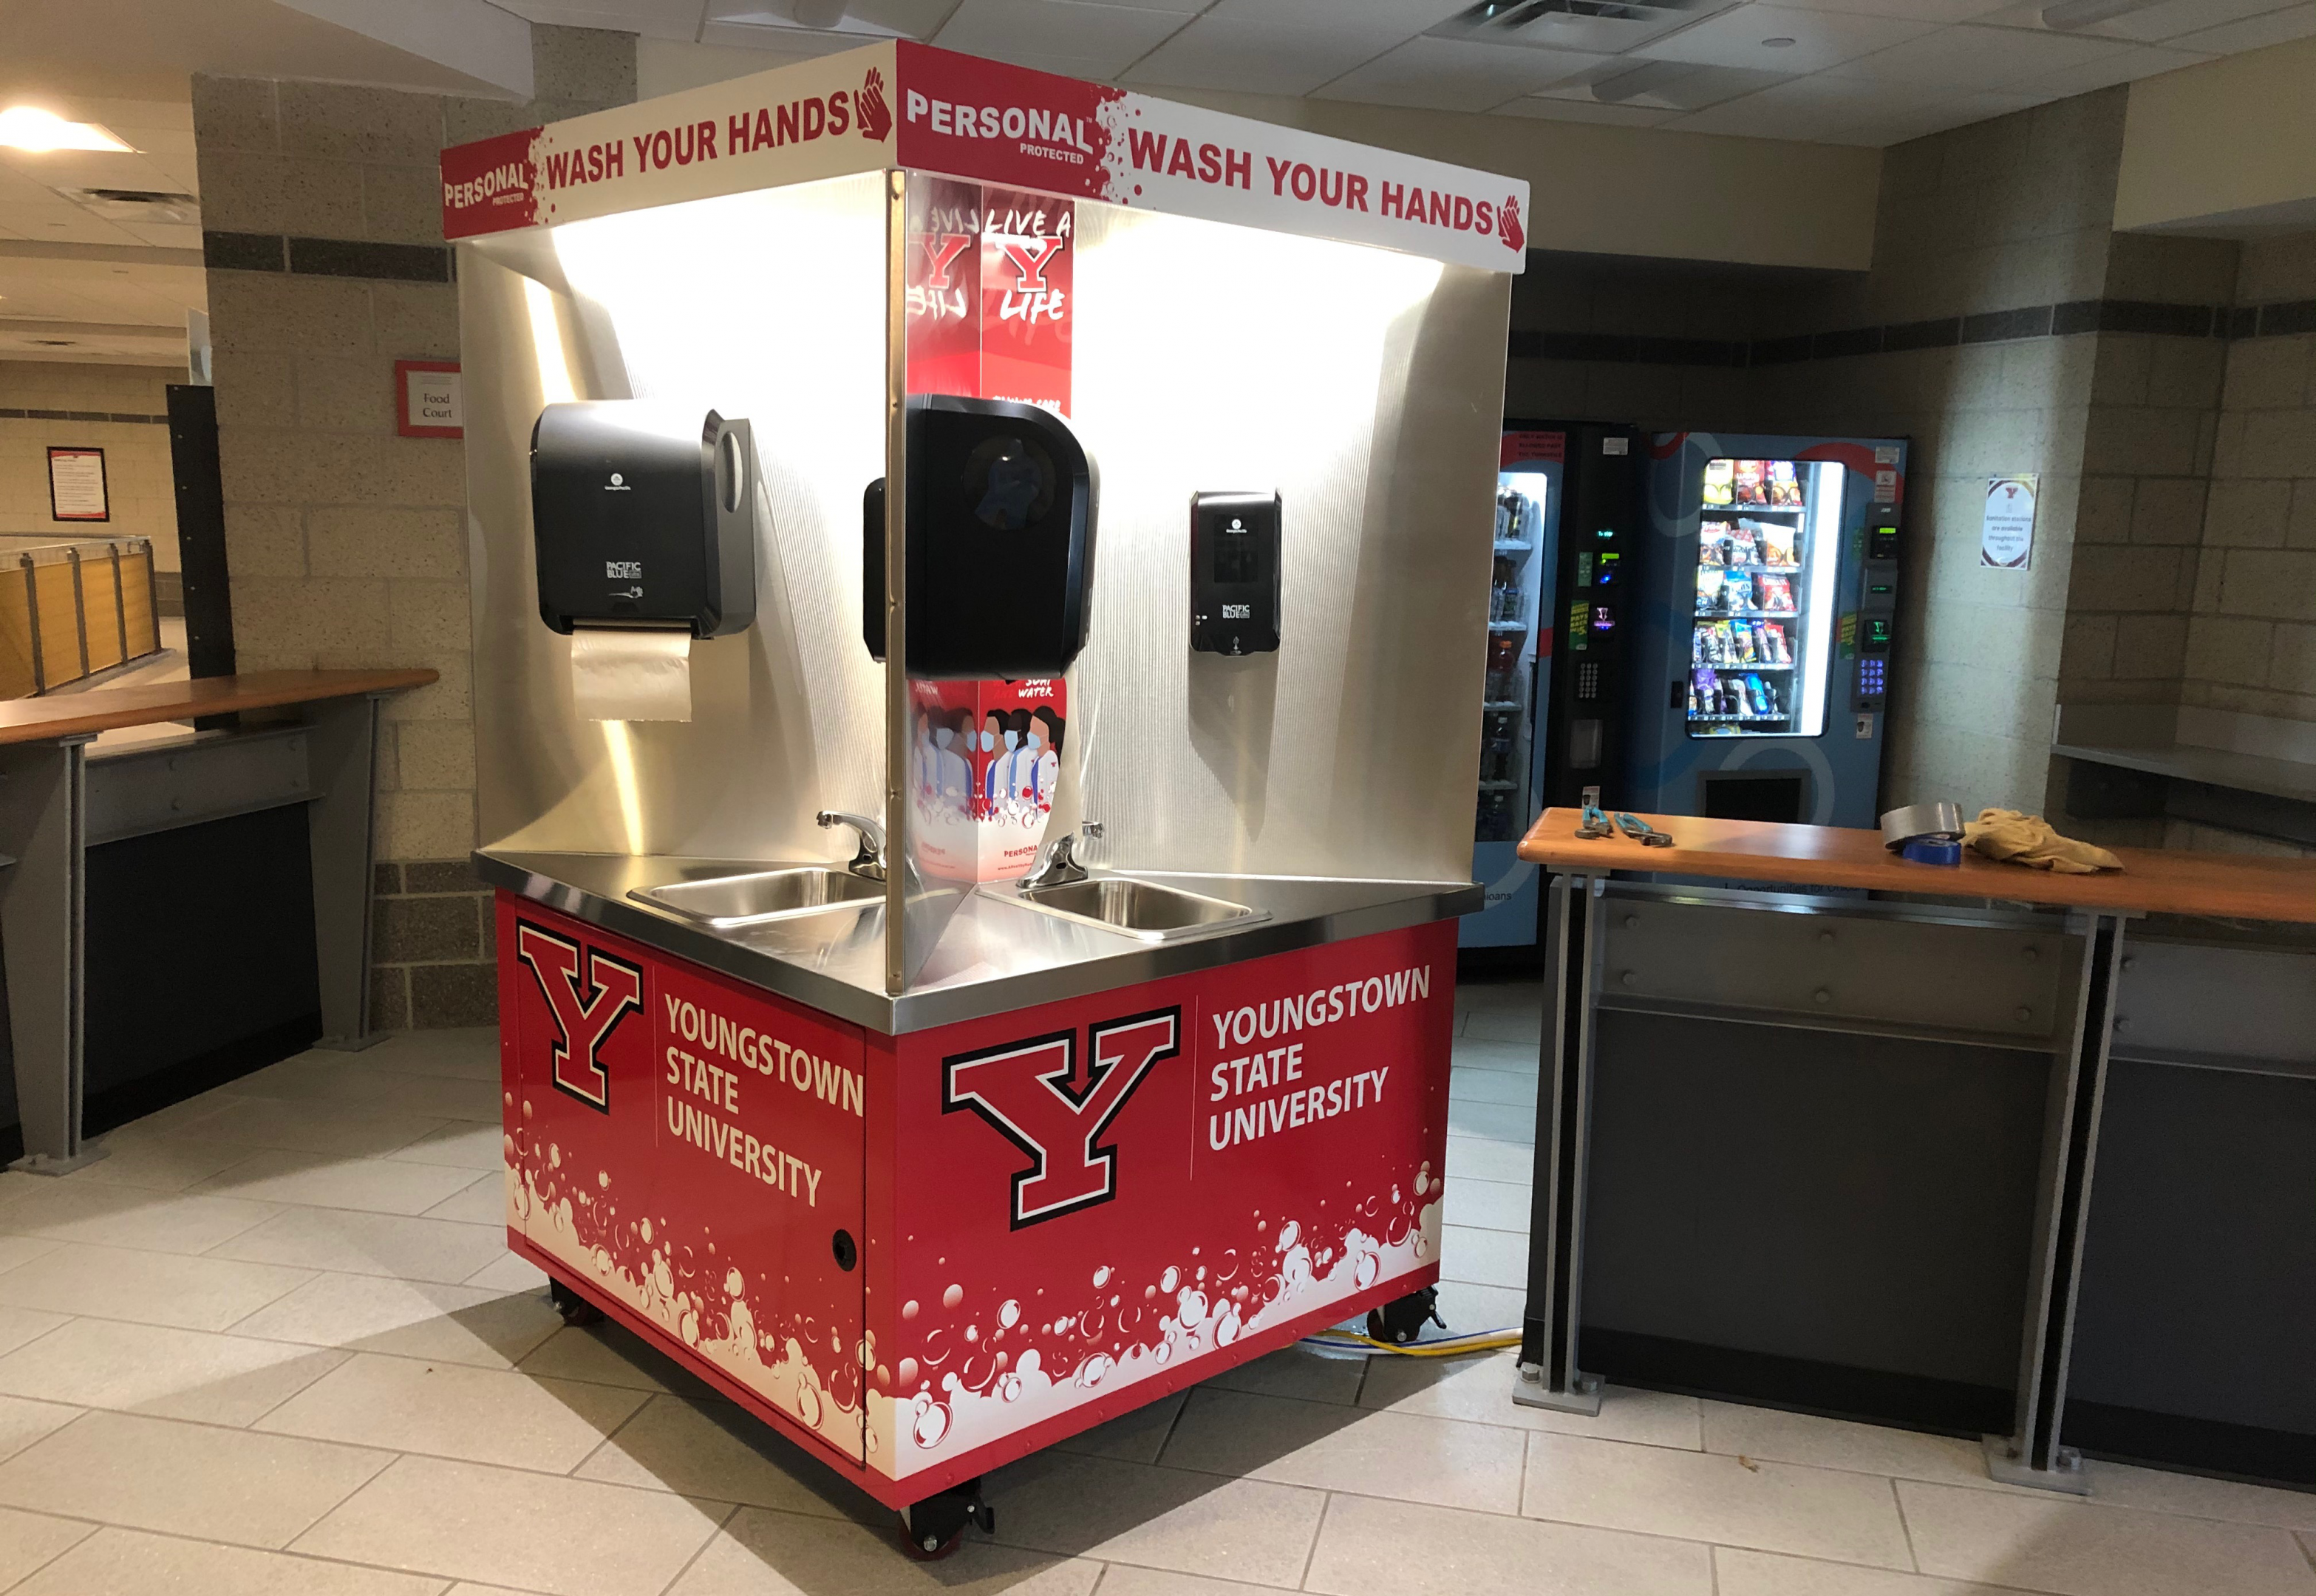 The new YSU branded handwashing stations that will be available across campus in the fall